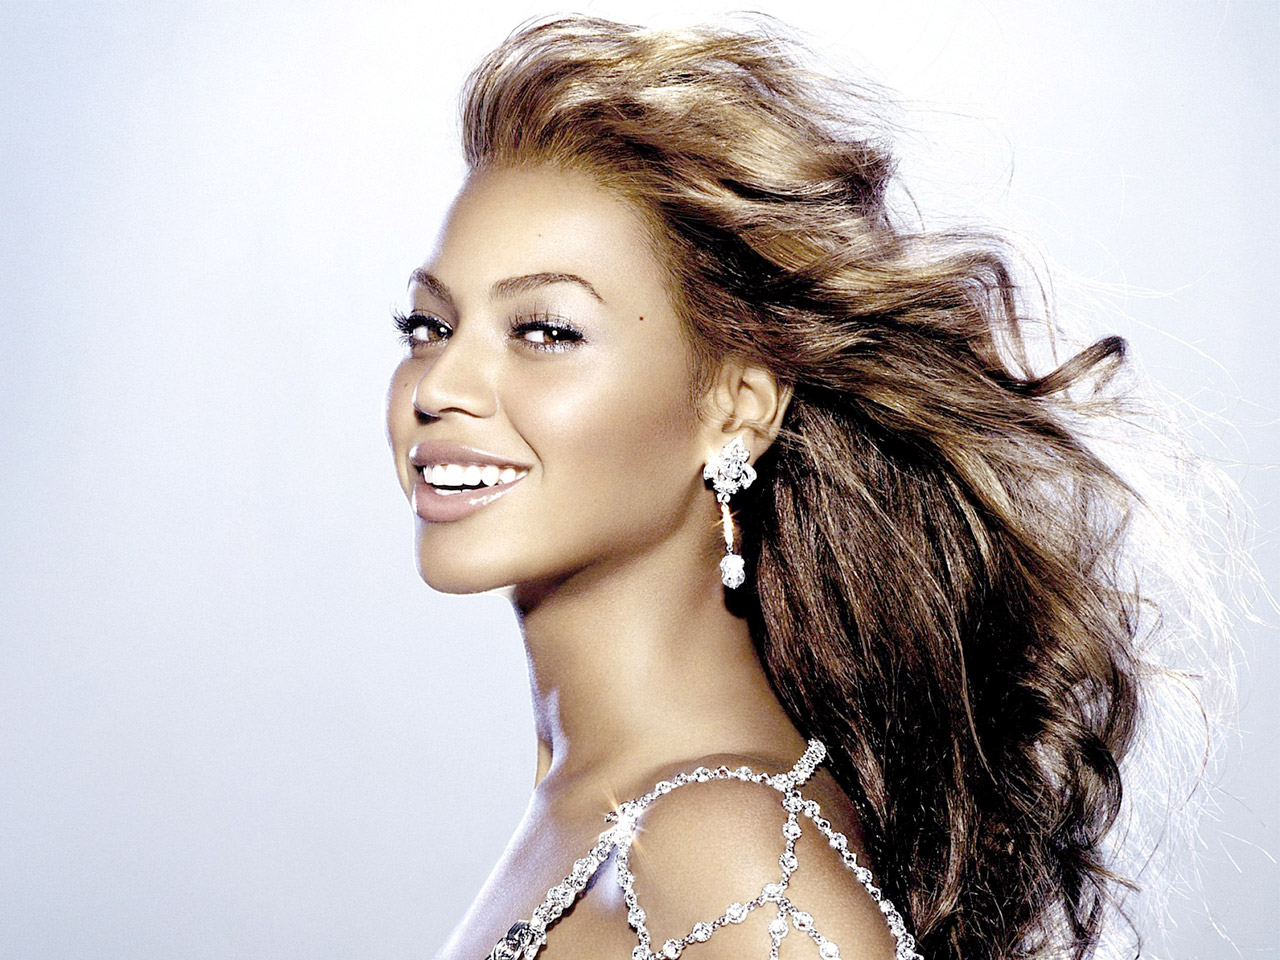 Beyonce Knowles HQ Wallpapers | Beyonce Knowles Wallpapers ... Beyonce Knowles